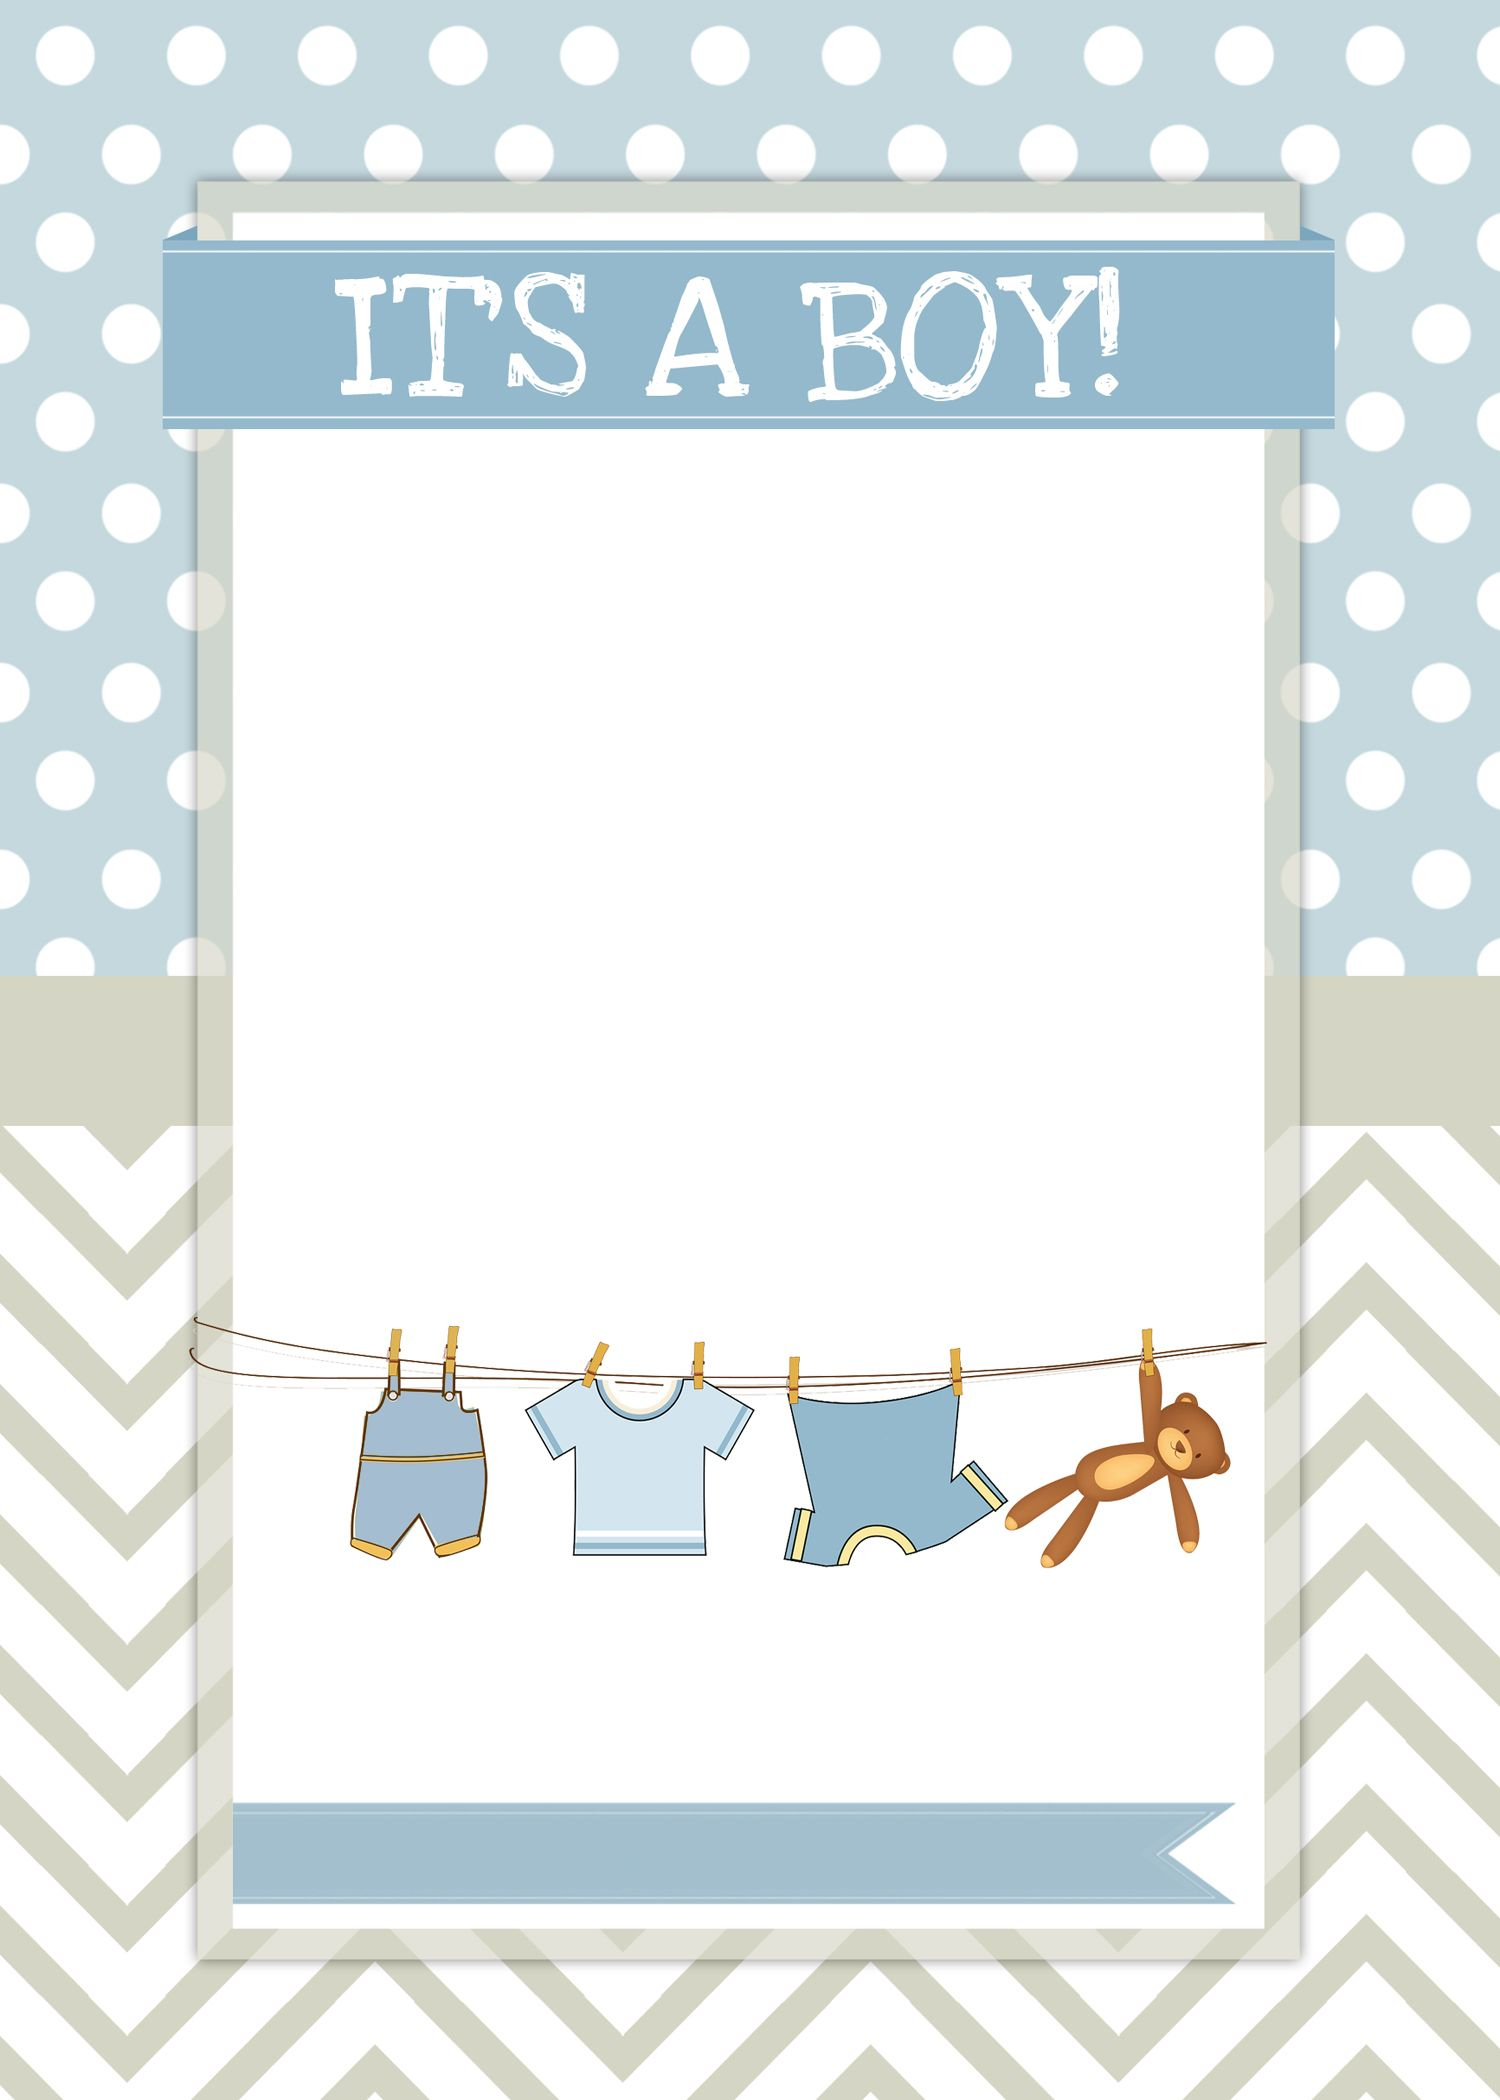 Boy Baby Shower Free Printables   Ideas For The House   Pinterest - Free Printable Baby Shower Invitations Templates For Boys